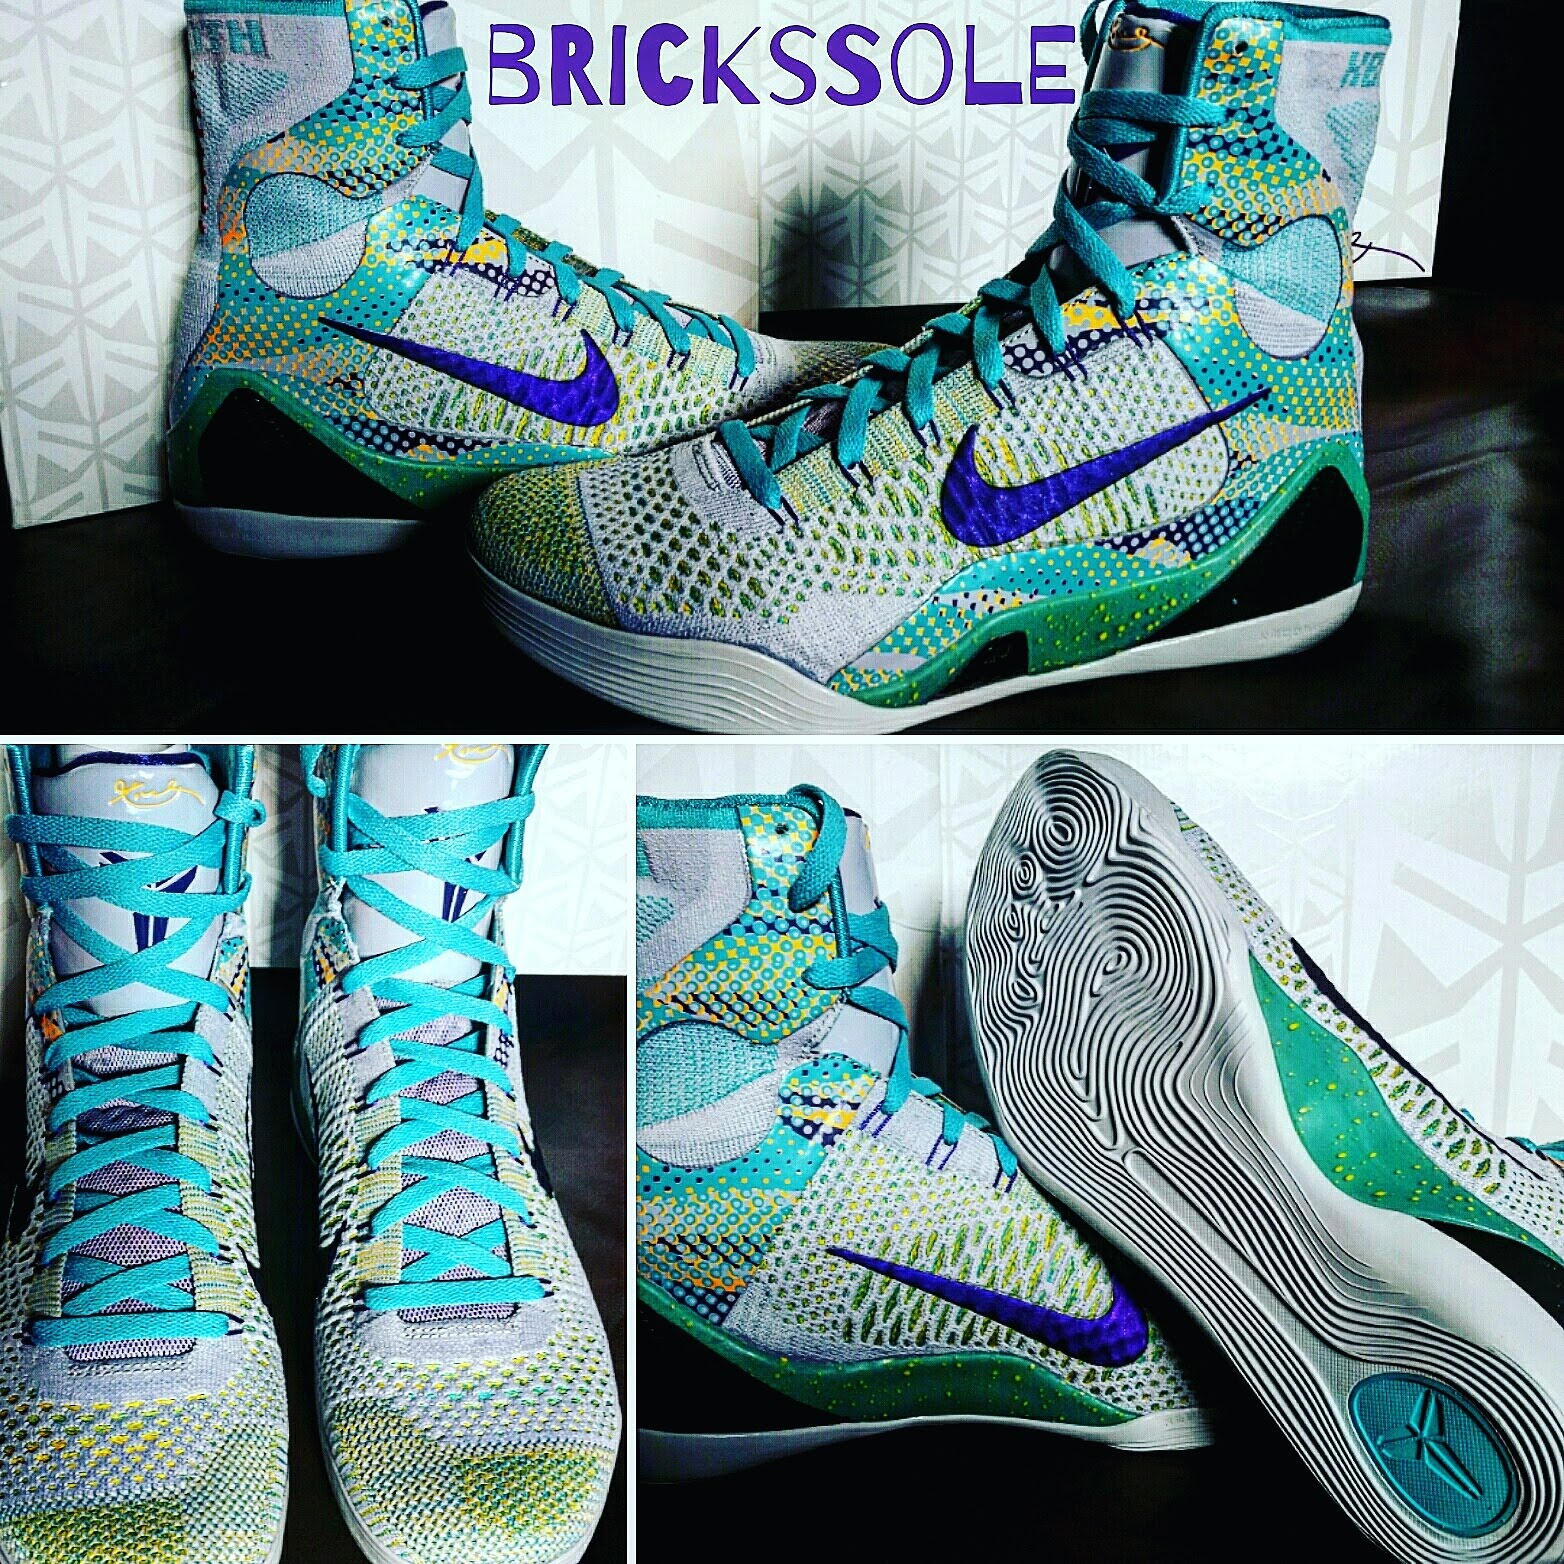 promo code 2596c bd1ee Price   224.99 Size  12 Condition  Deadstock Model  630847-005 Included   Original Box Colorway  Wolf Grey Court Purple-Turquoise